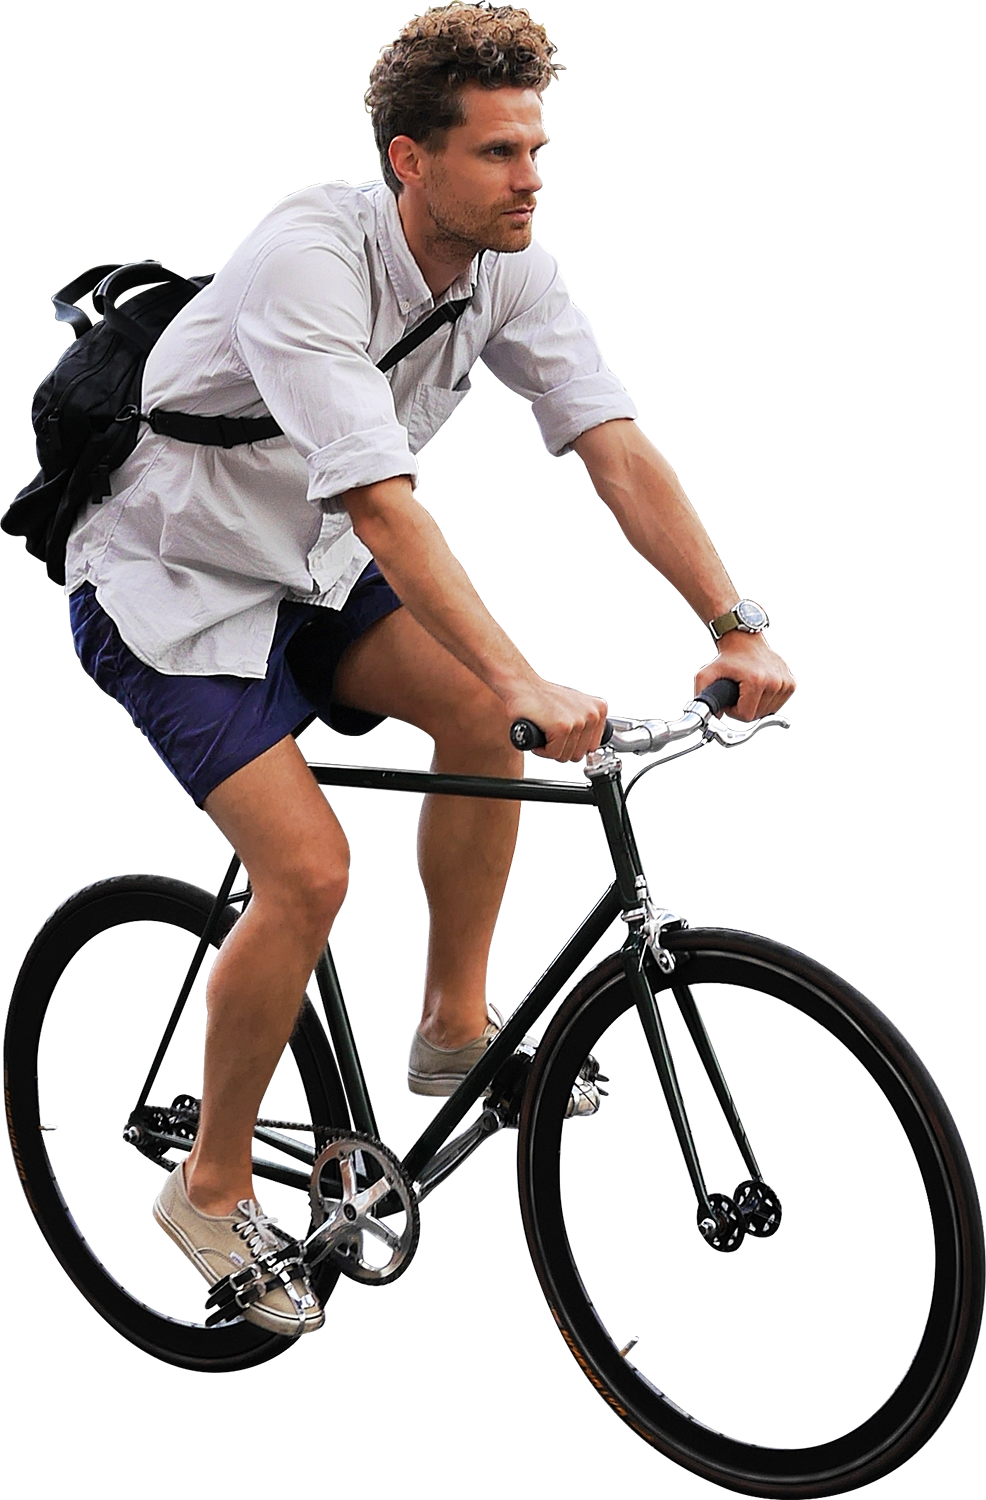 Riding bicycle png. Ride a bike transparent